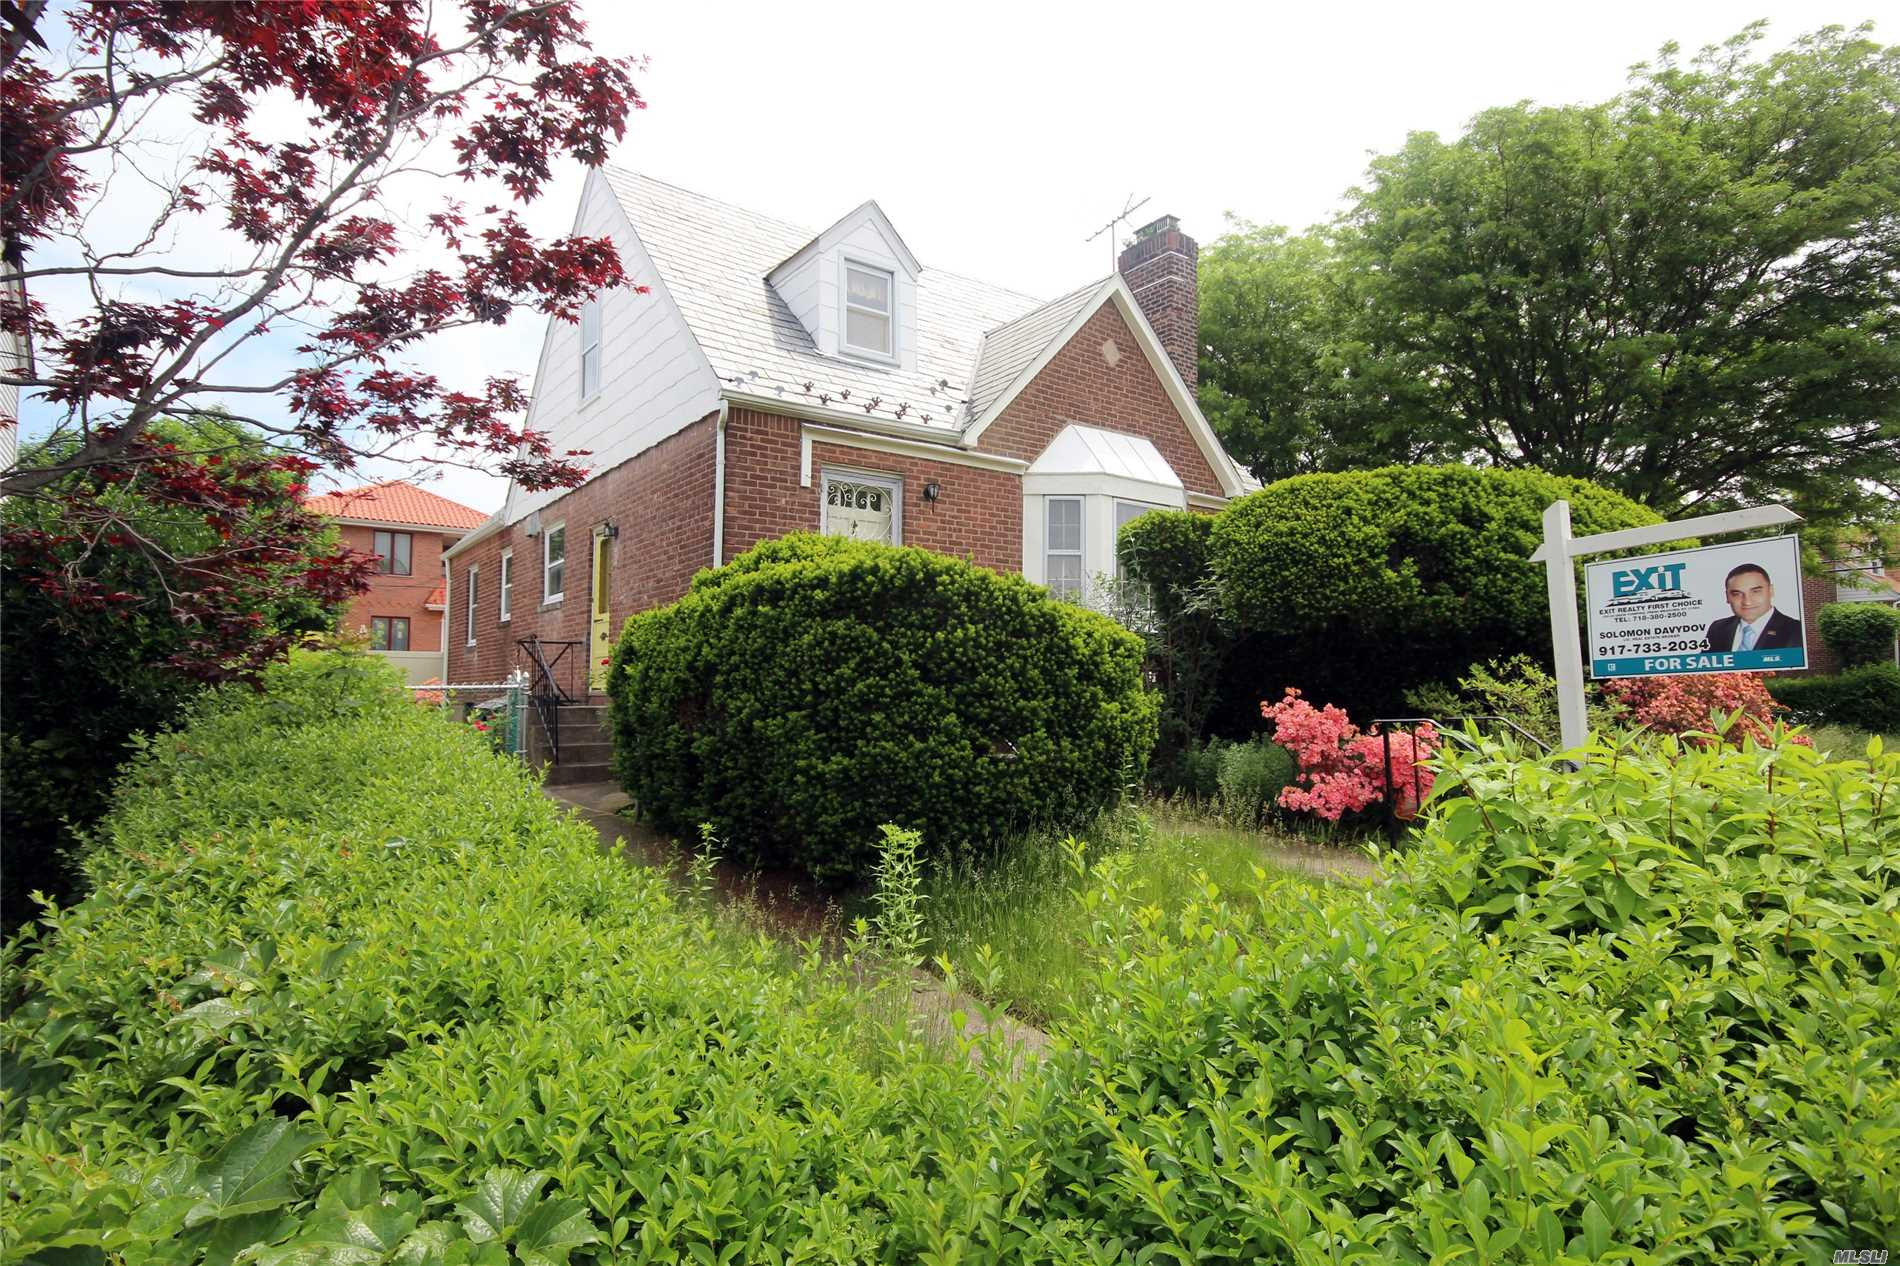 Detached House Located In The Center Of Fresh Meadows, Minutes From Manhattan Express Bus& Other Transportation, Shopping, Schools And Houses Of Worship. The House Features An Extra Large Lot Consisting Of Living Room W/Fireplace, Formal Dining Room, 4-Bedrooms, Eat In Kitchen, Full Finished Basement With Maids Room And Large Family Room. There Is A Spacious Side Yard, Large Backyard And A Detached Garage. Great For Future Development Of A Center Hall Colonial House Should Someone Be Interested.